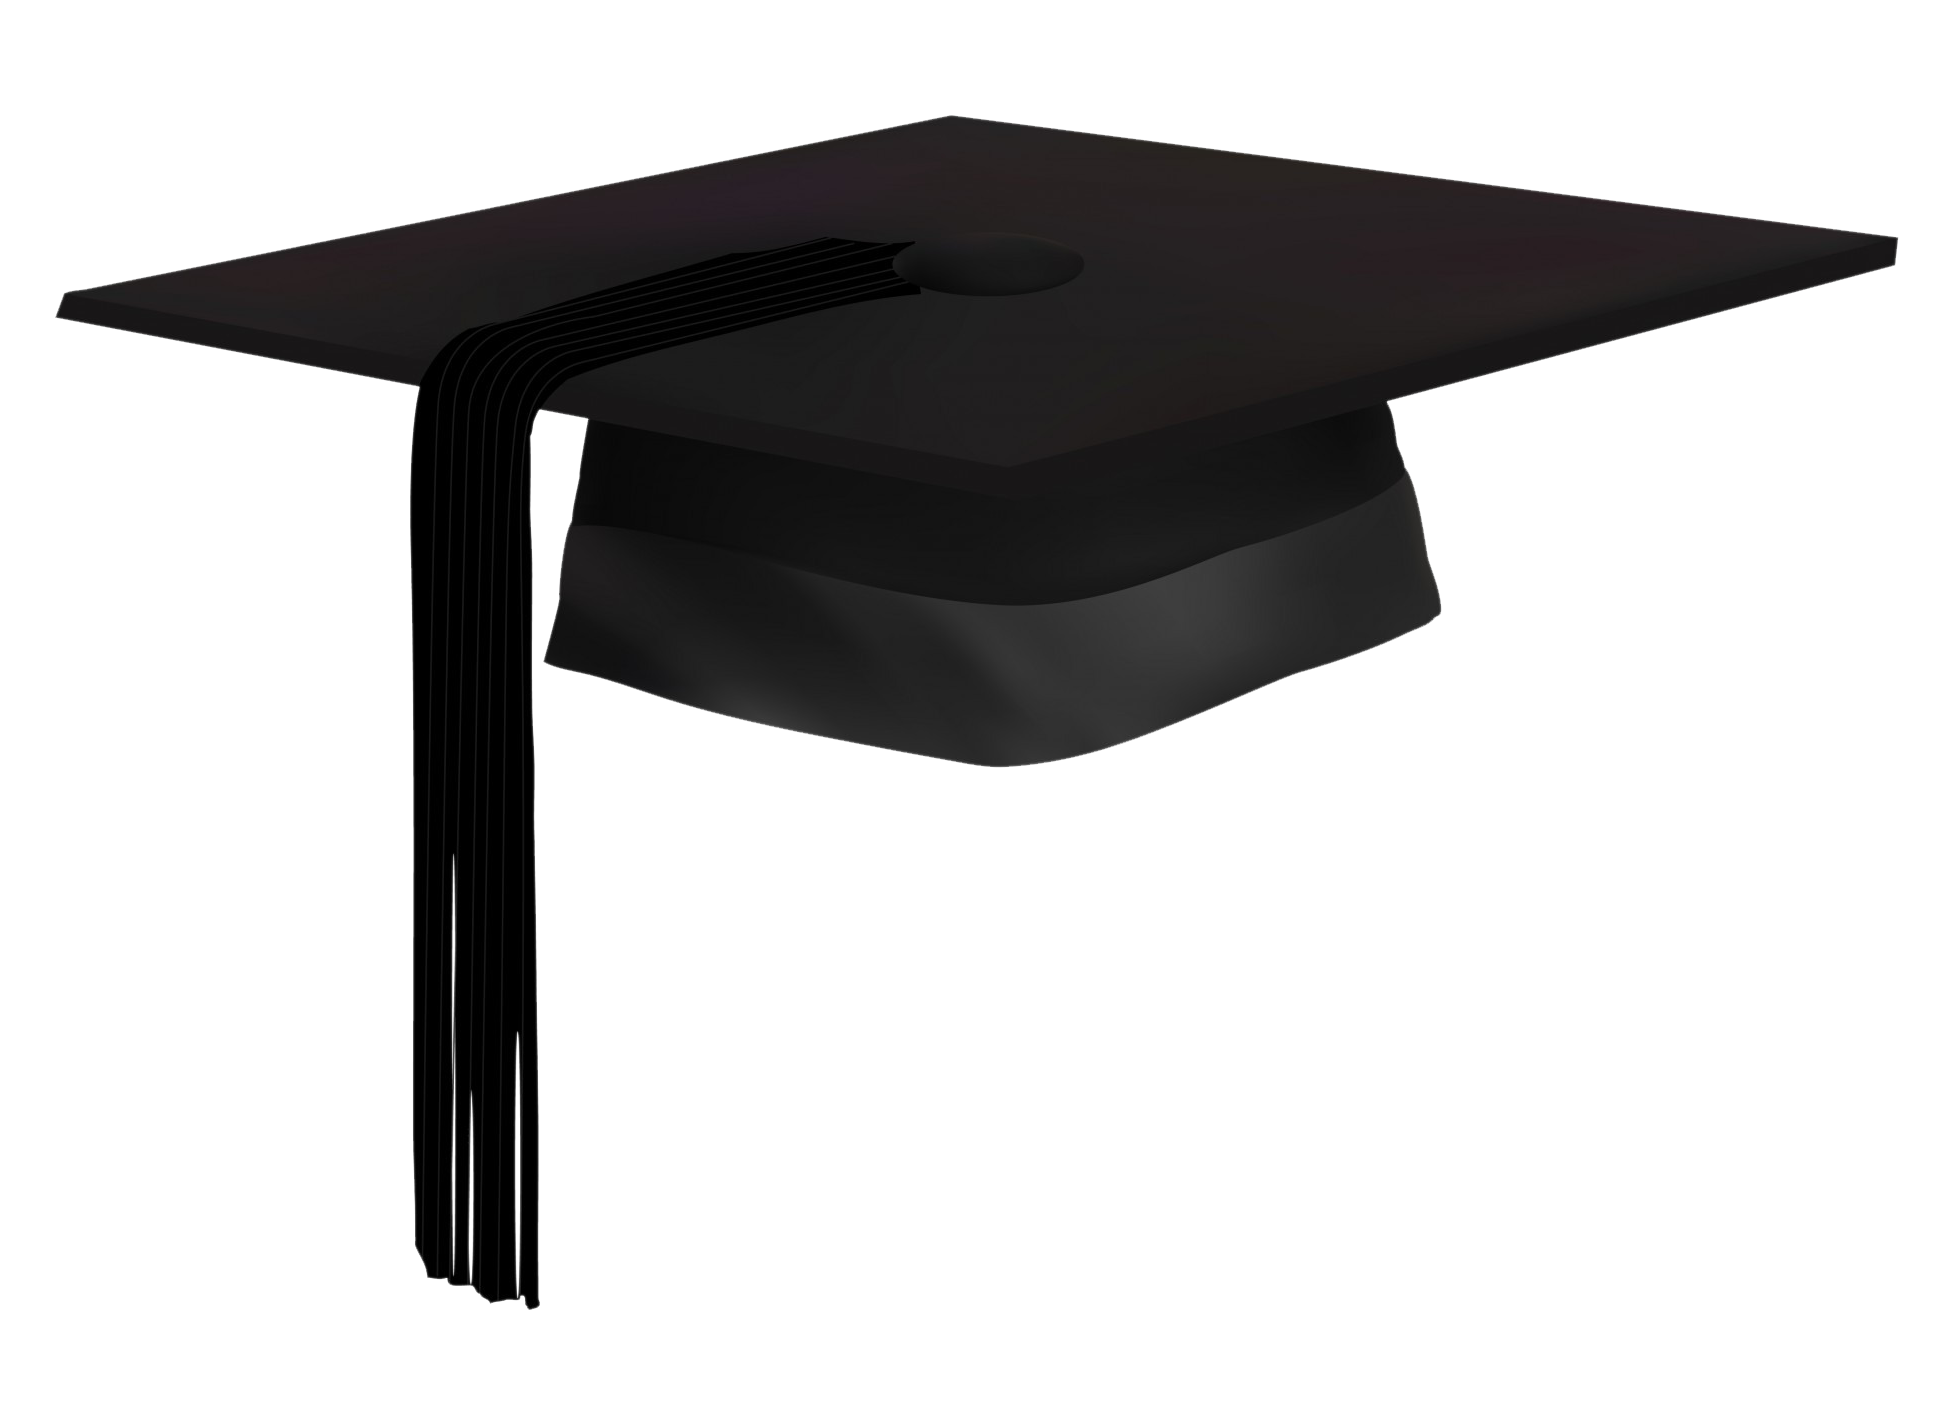 Resolution: 1950 x 1404 | Format: PNG | Keywords: Hat, Cap, Student,  School, Graduation, Mortarboard, Education, University, Object, Degree,  Diploma, PlusPng.com  - Degree Cap PNG